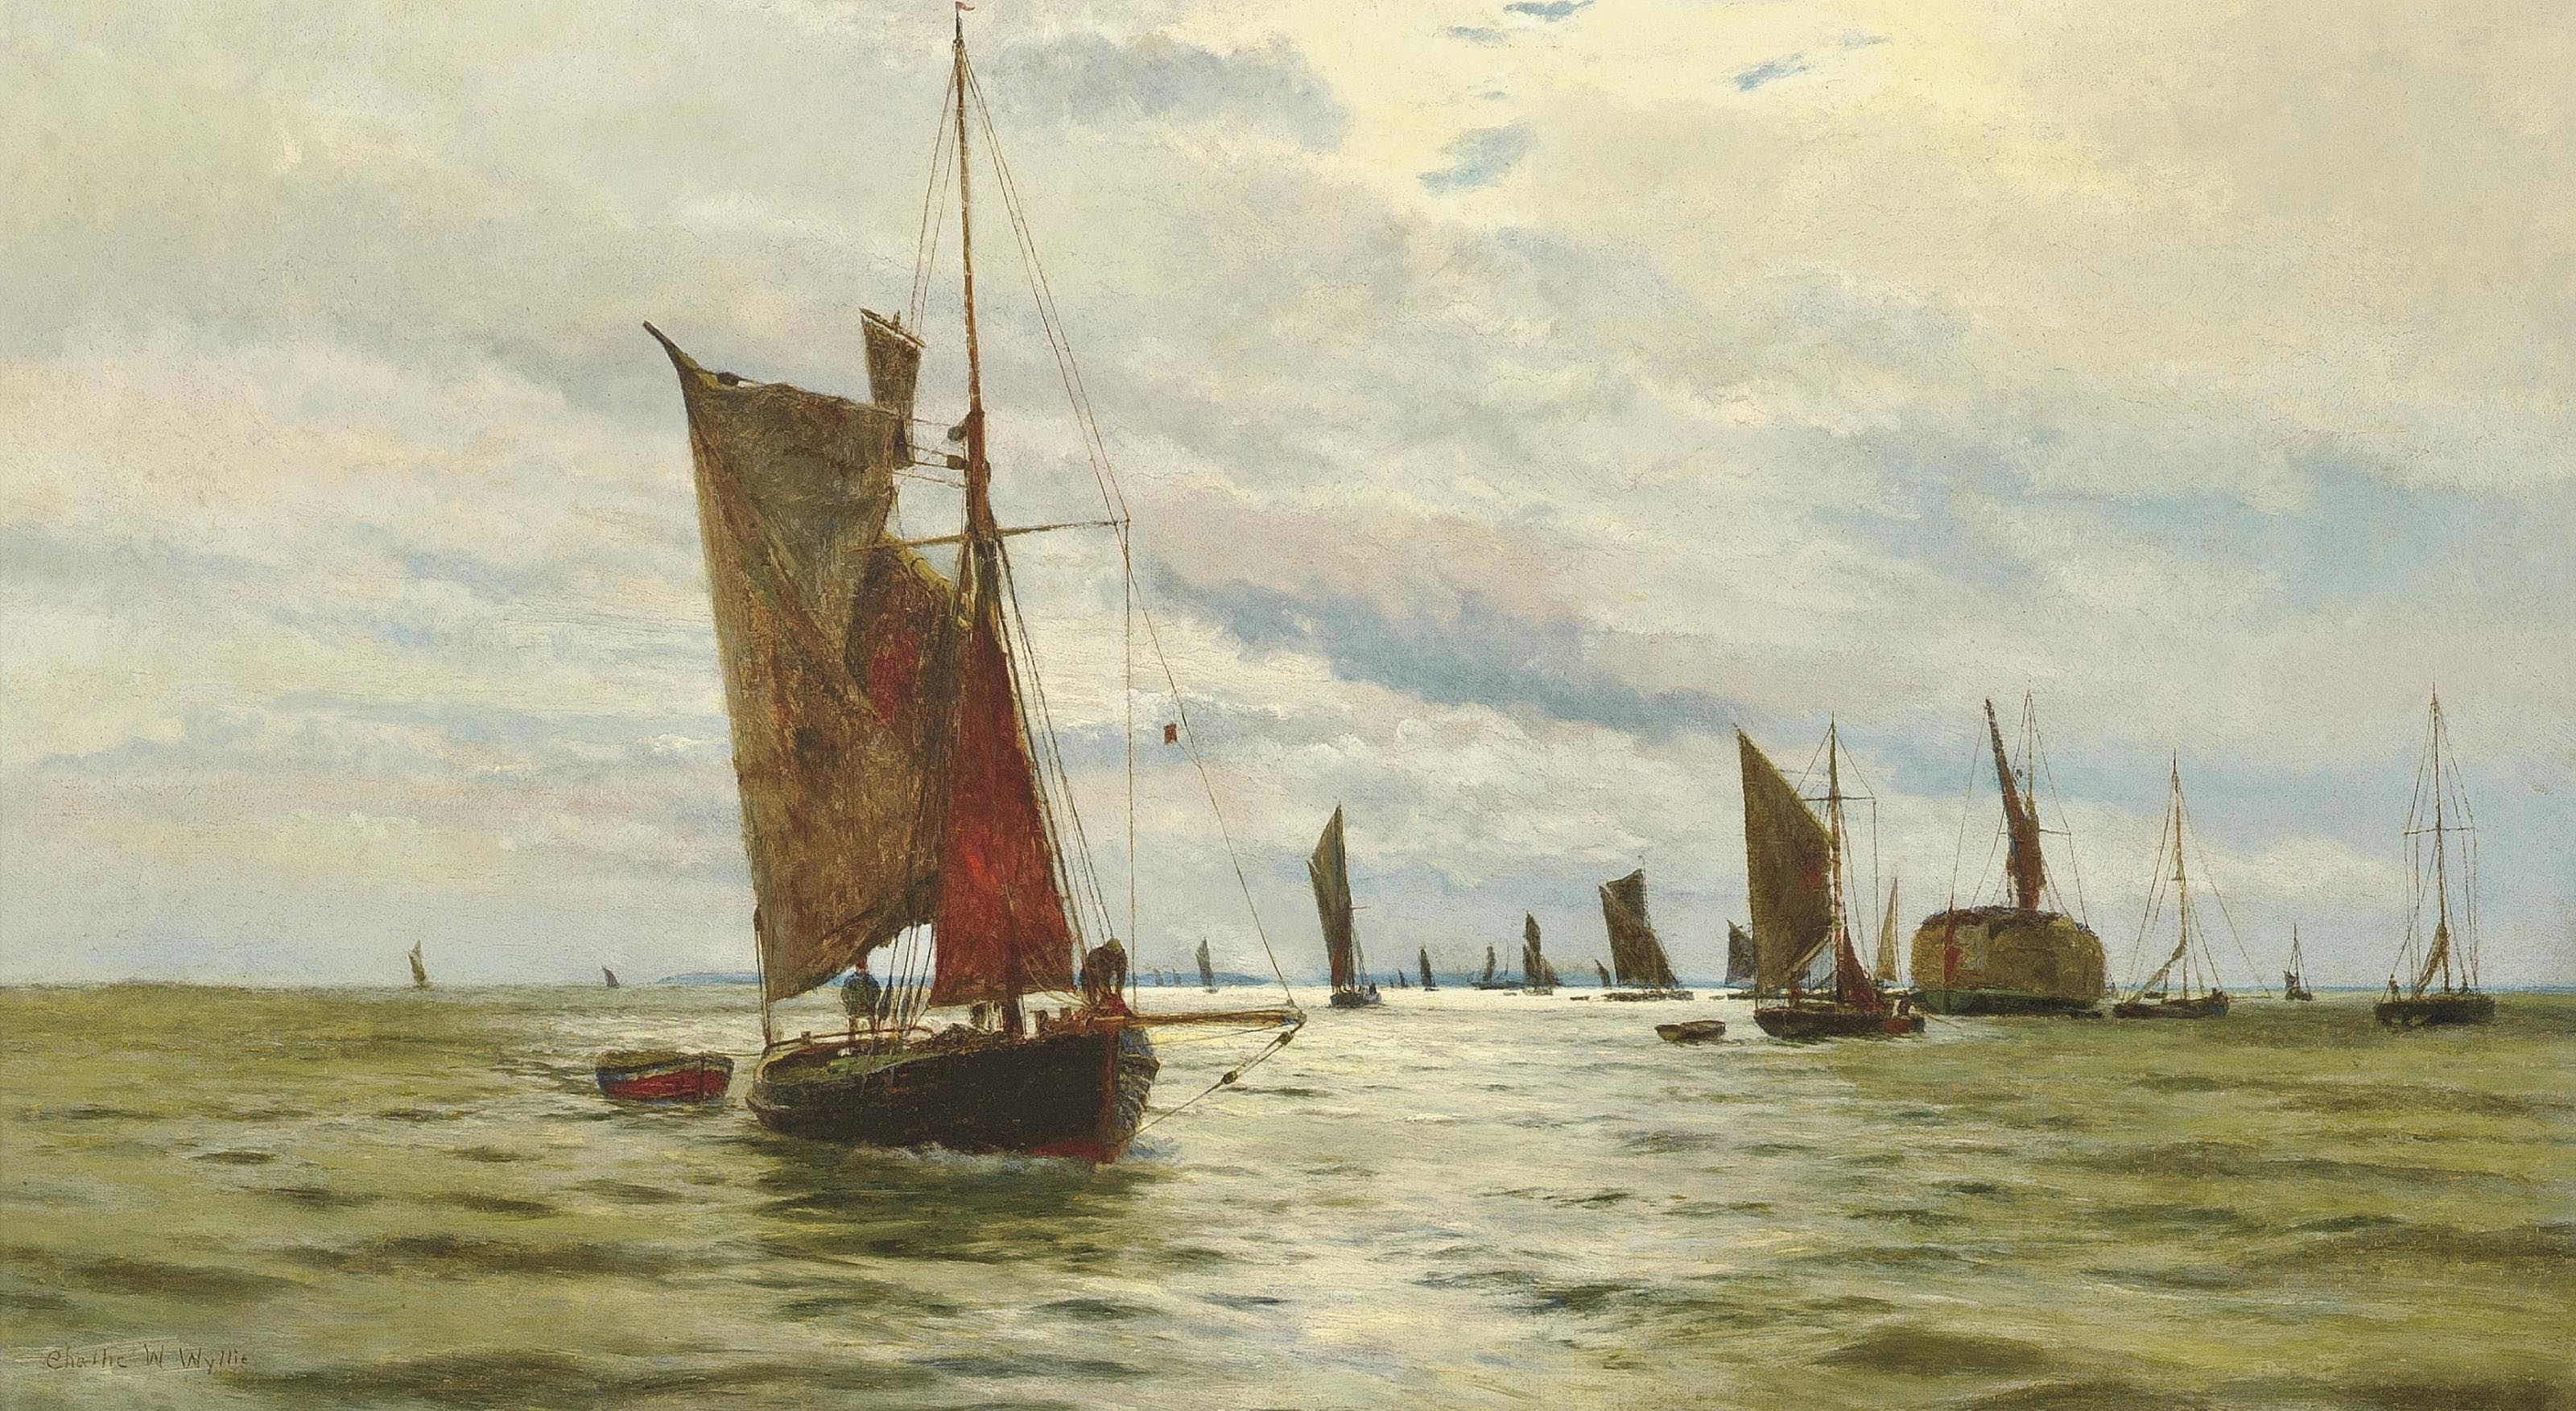 Bustling activity on the Thames